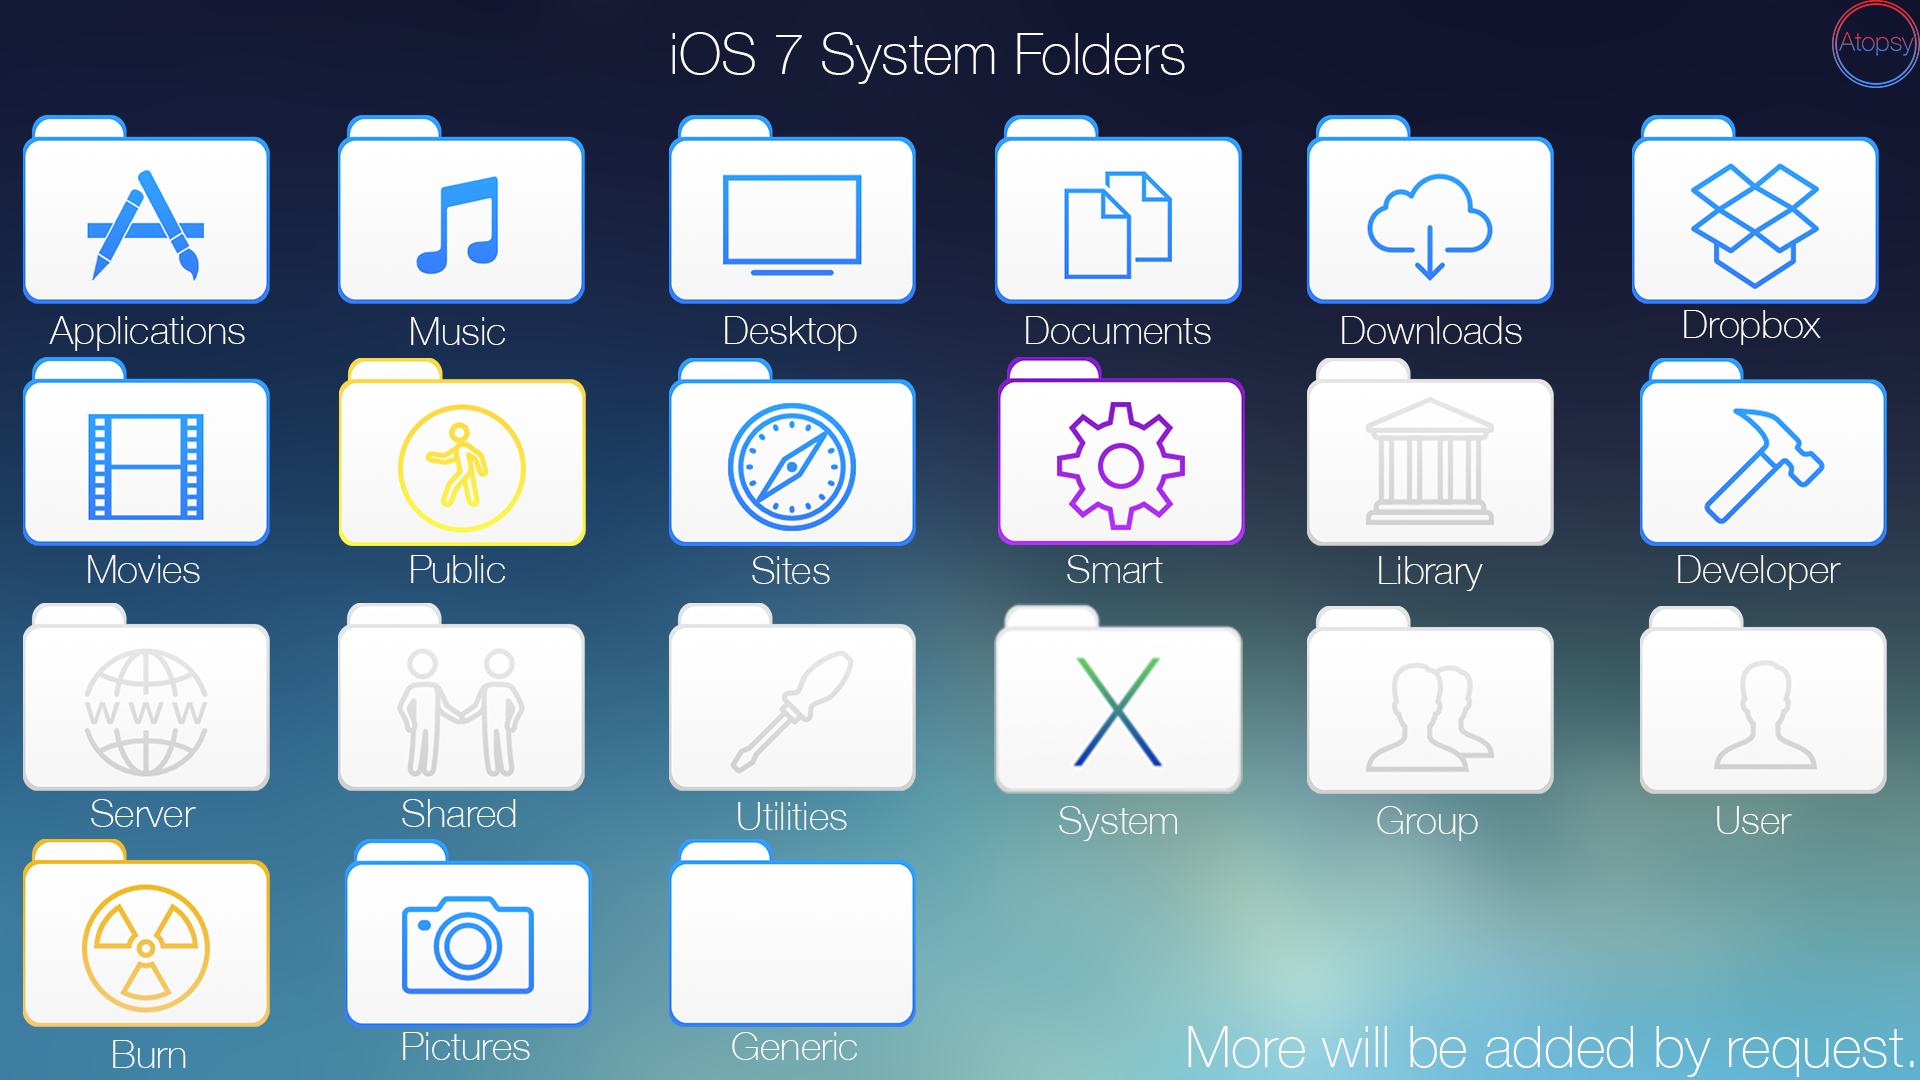 iOS 7 Style System Folders by Atopsy